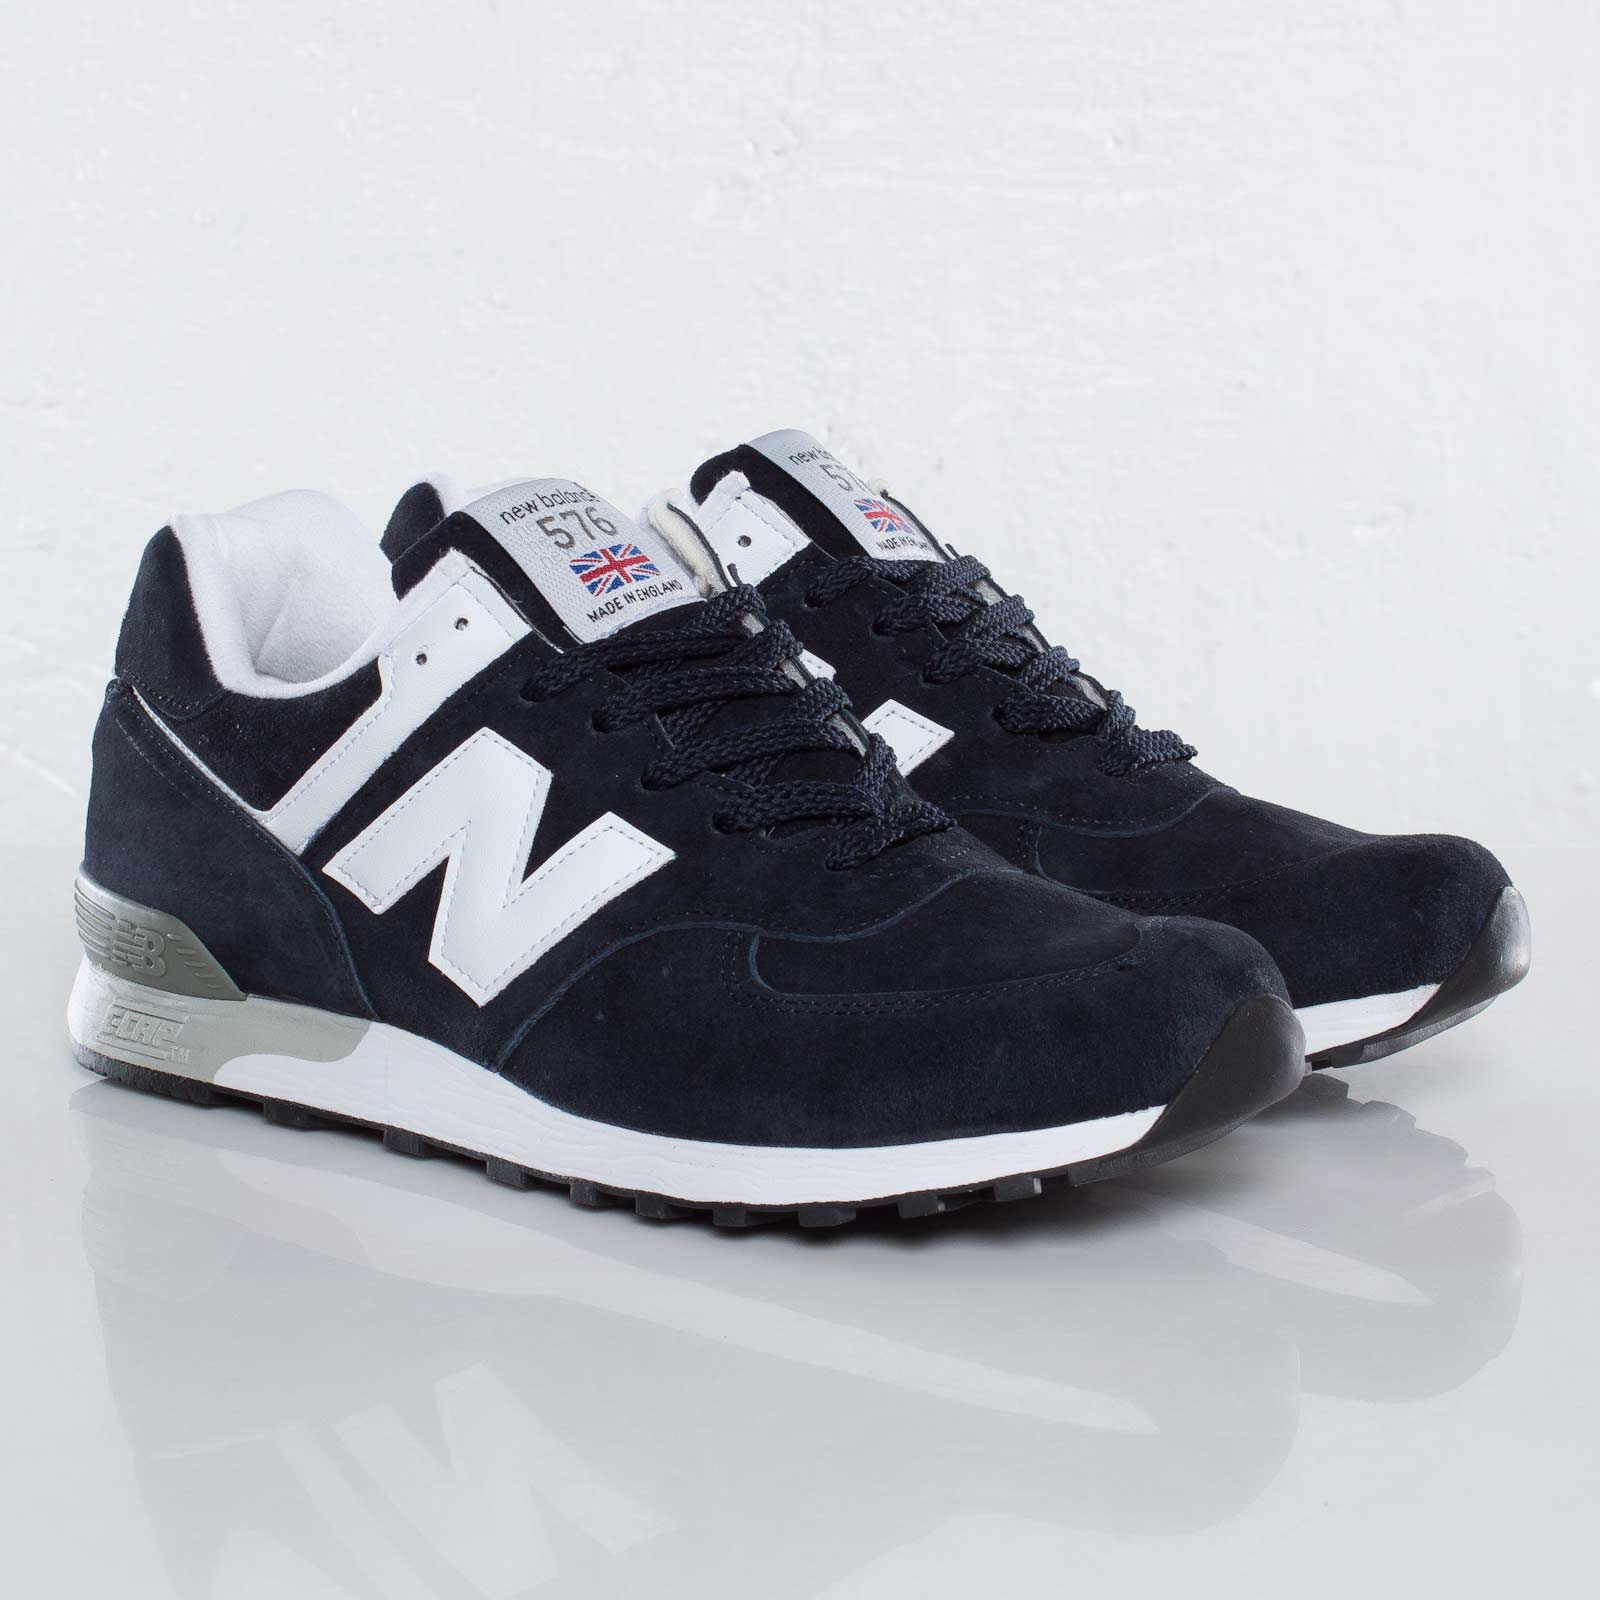 51df95177b11b8 coupon code for new balance m576 55a07 3c164